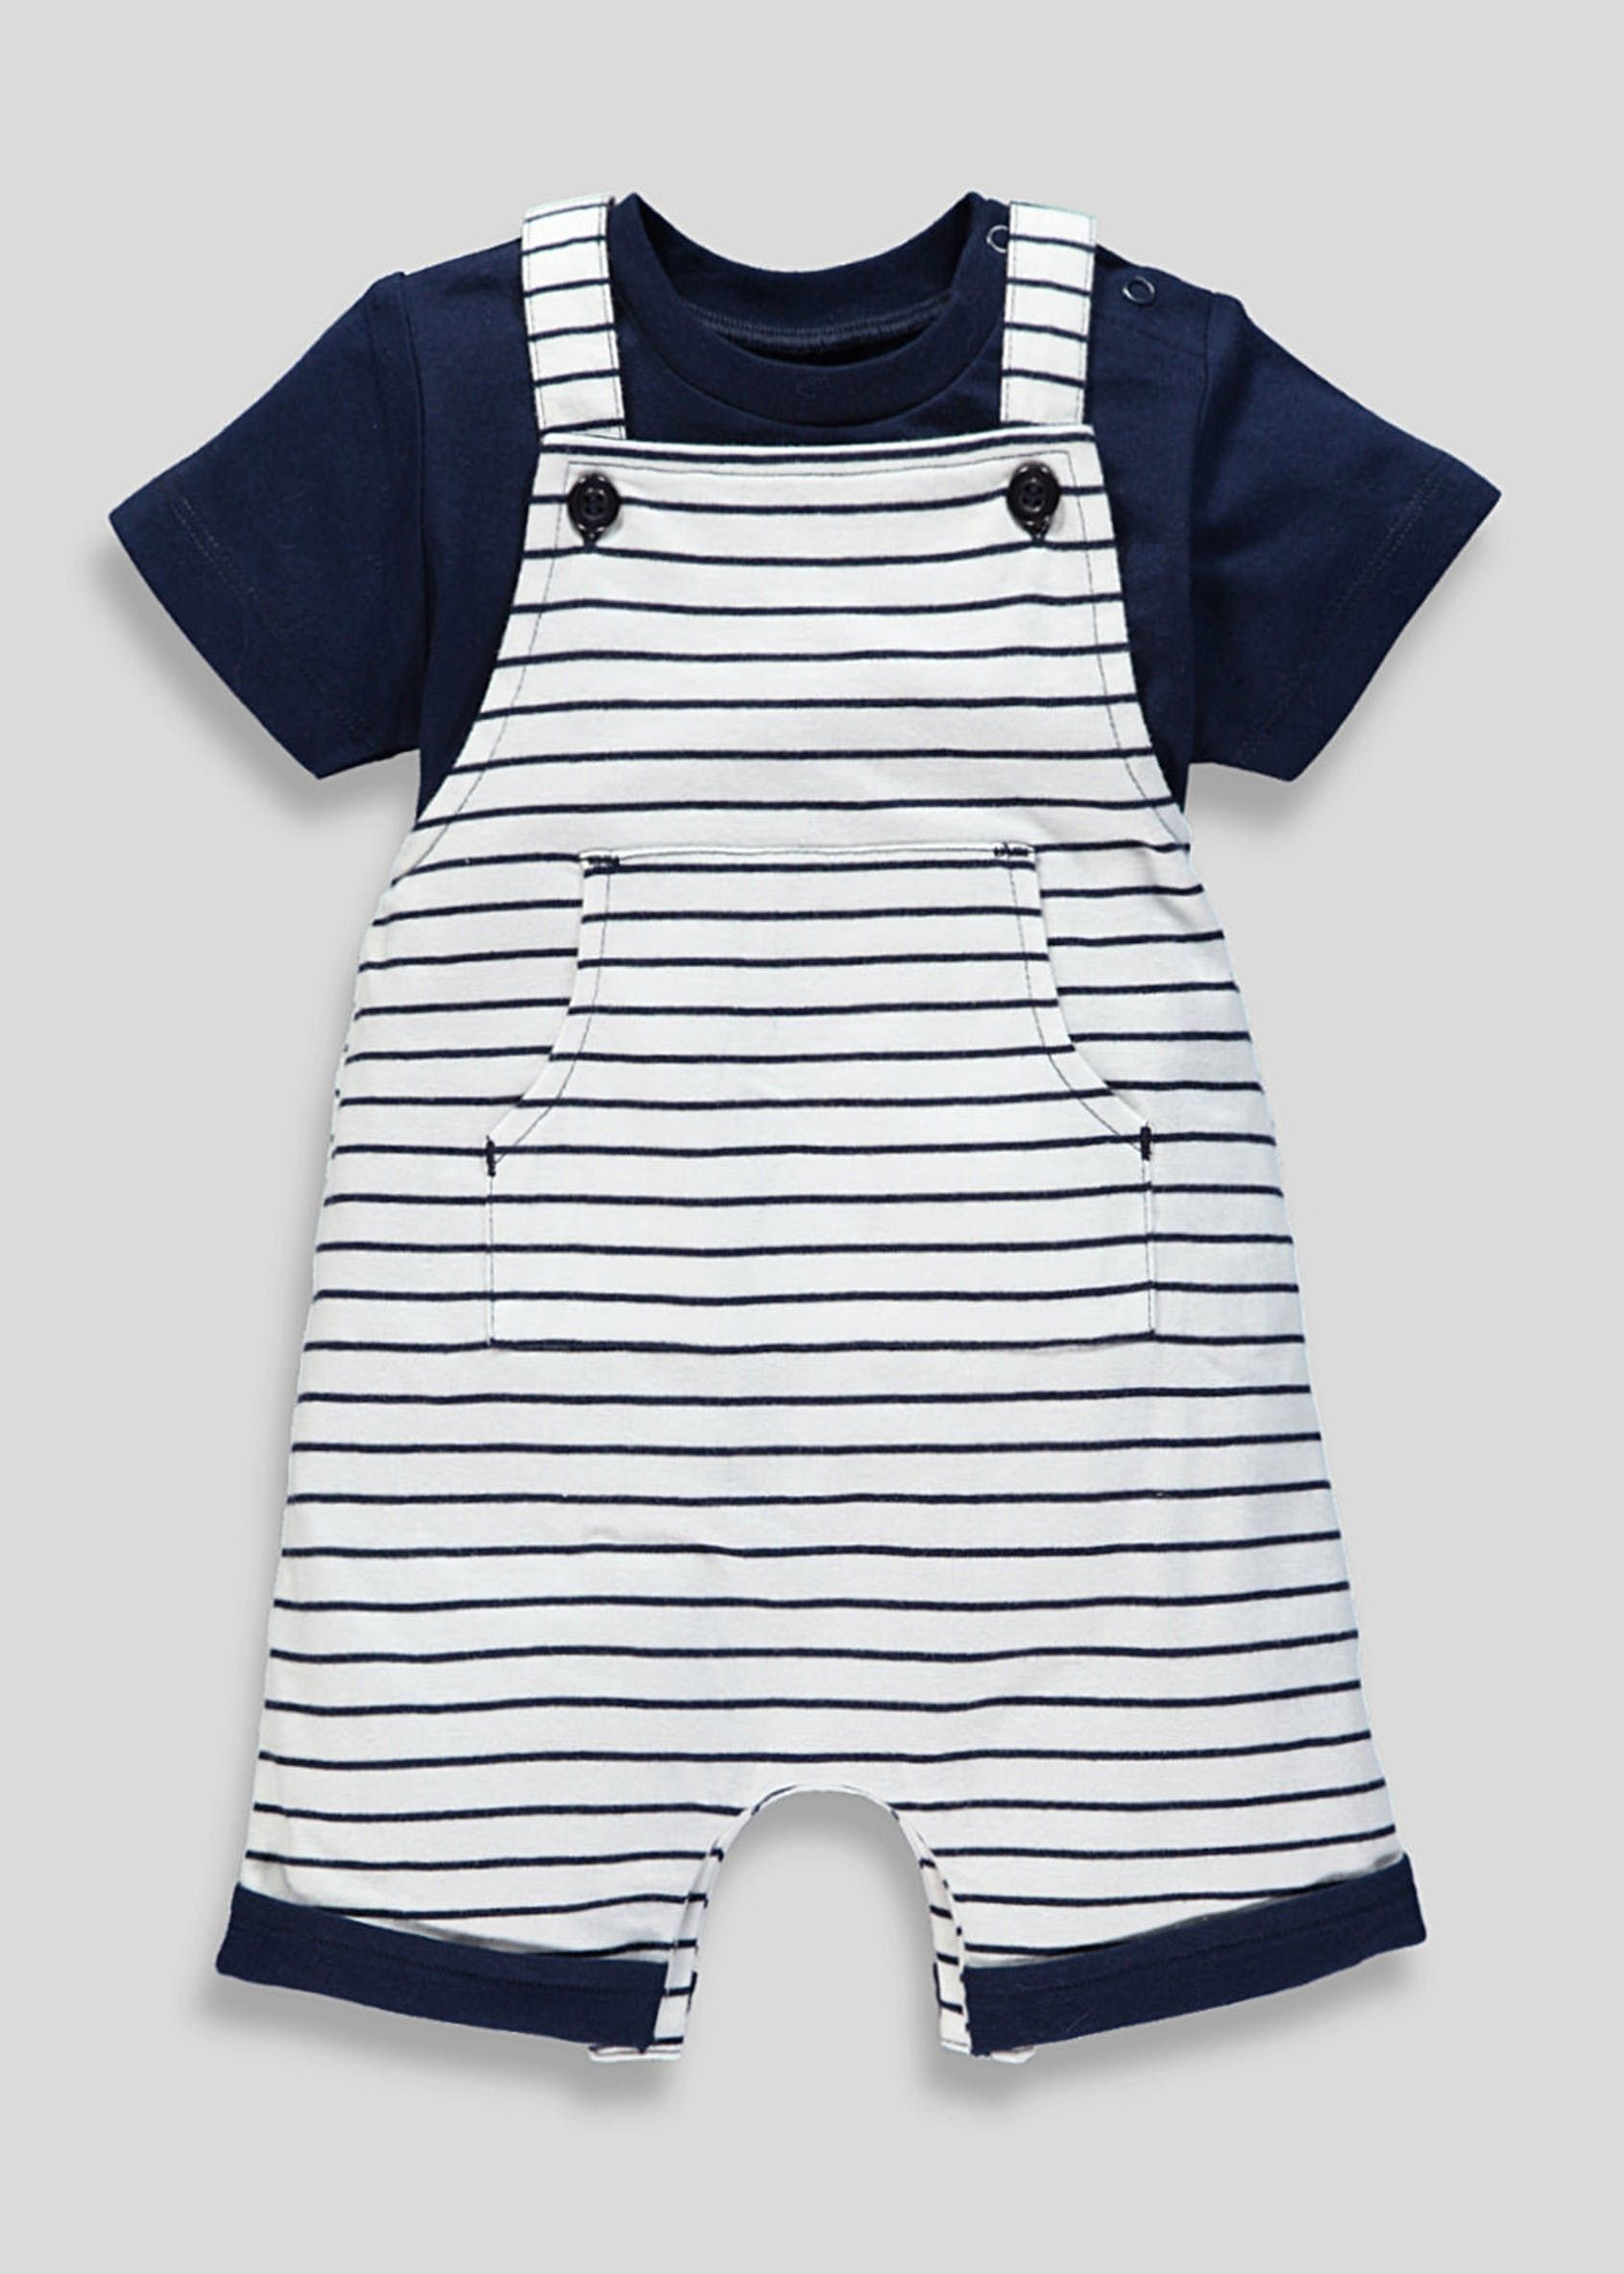 clear-cut texture hoard as a rare commodity provide large selection of Unisex Stripe Dungarees & Bodysuit Set (Newborn-18mths ...